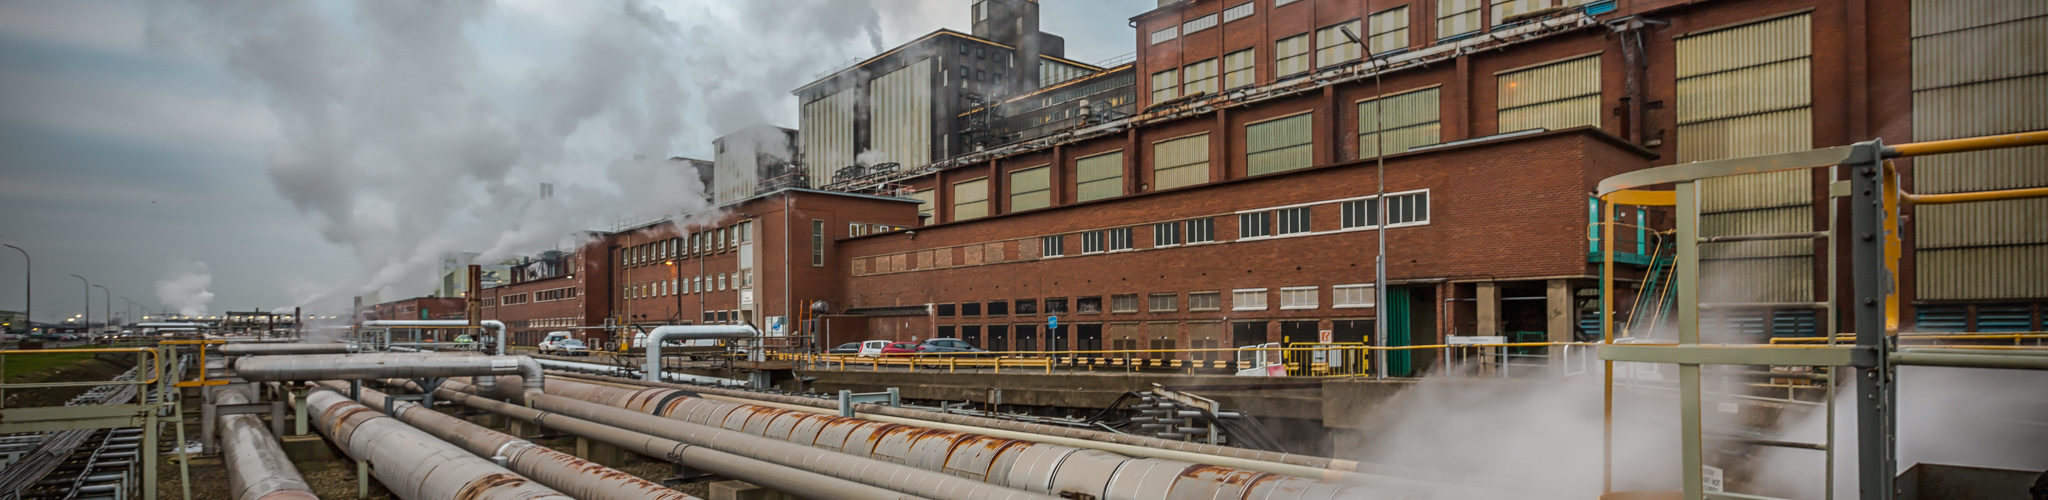 External view of the power station in 2017